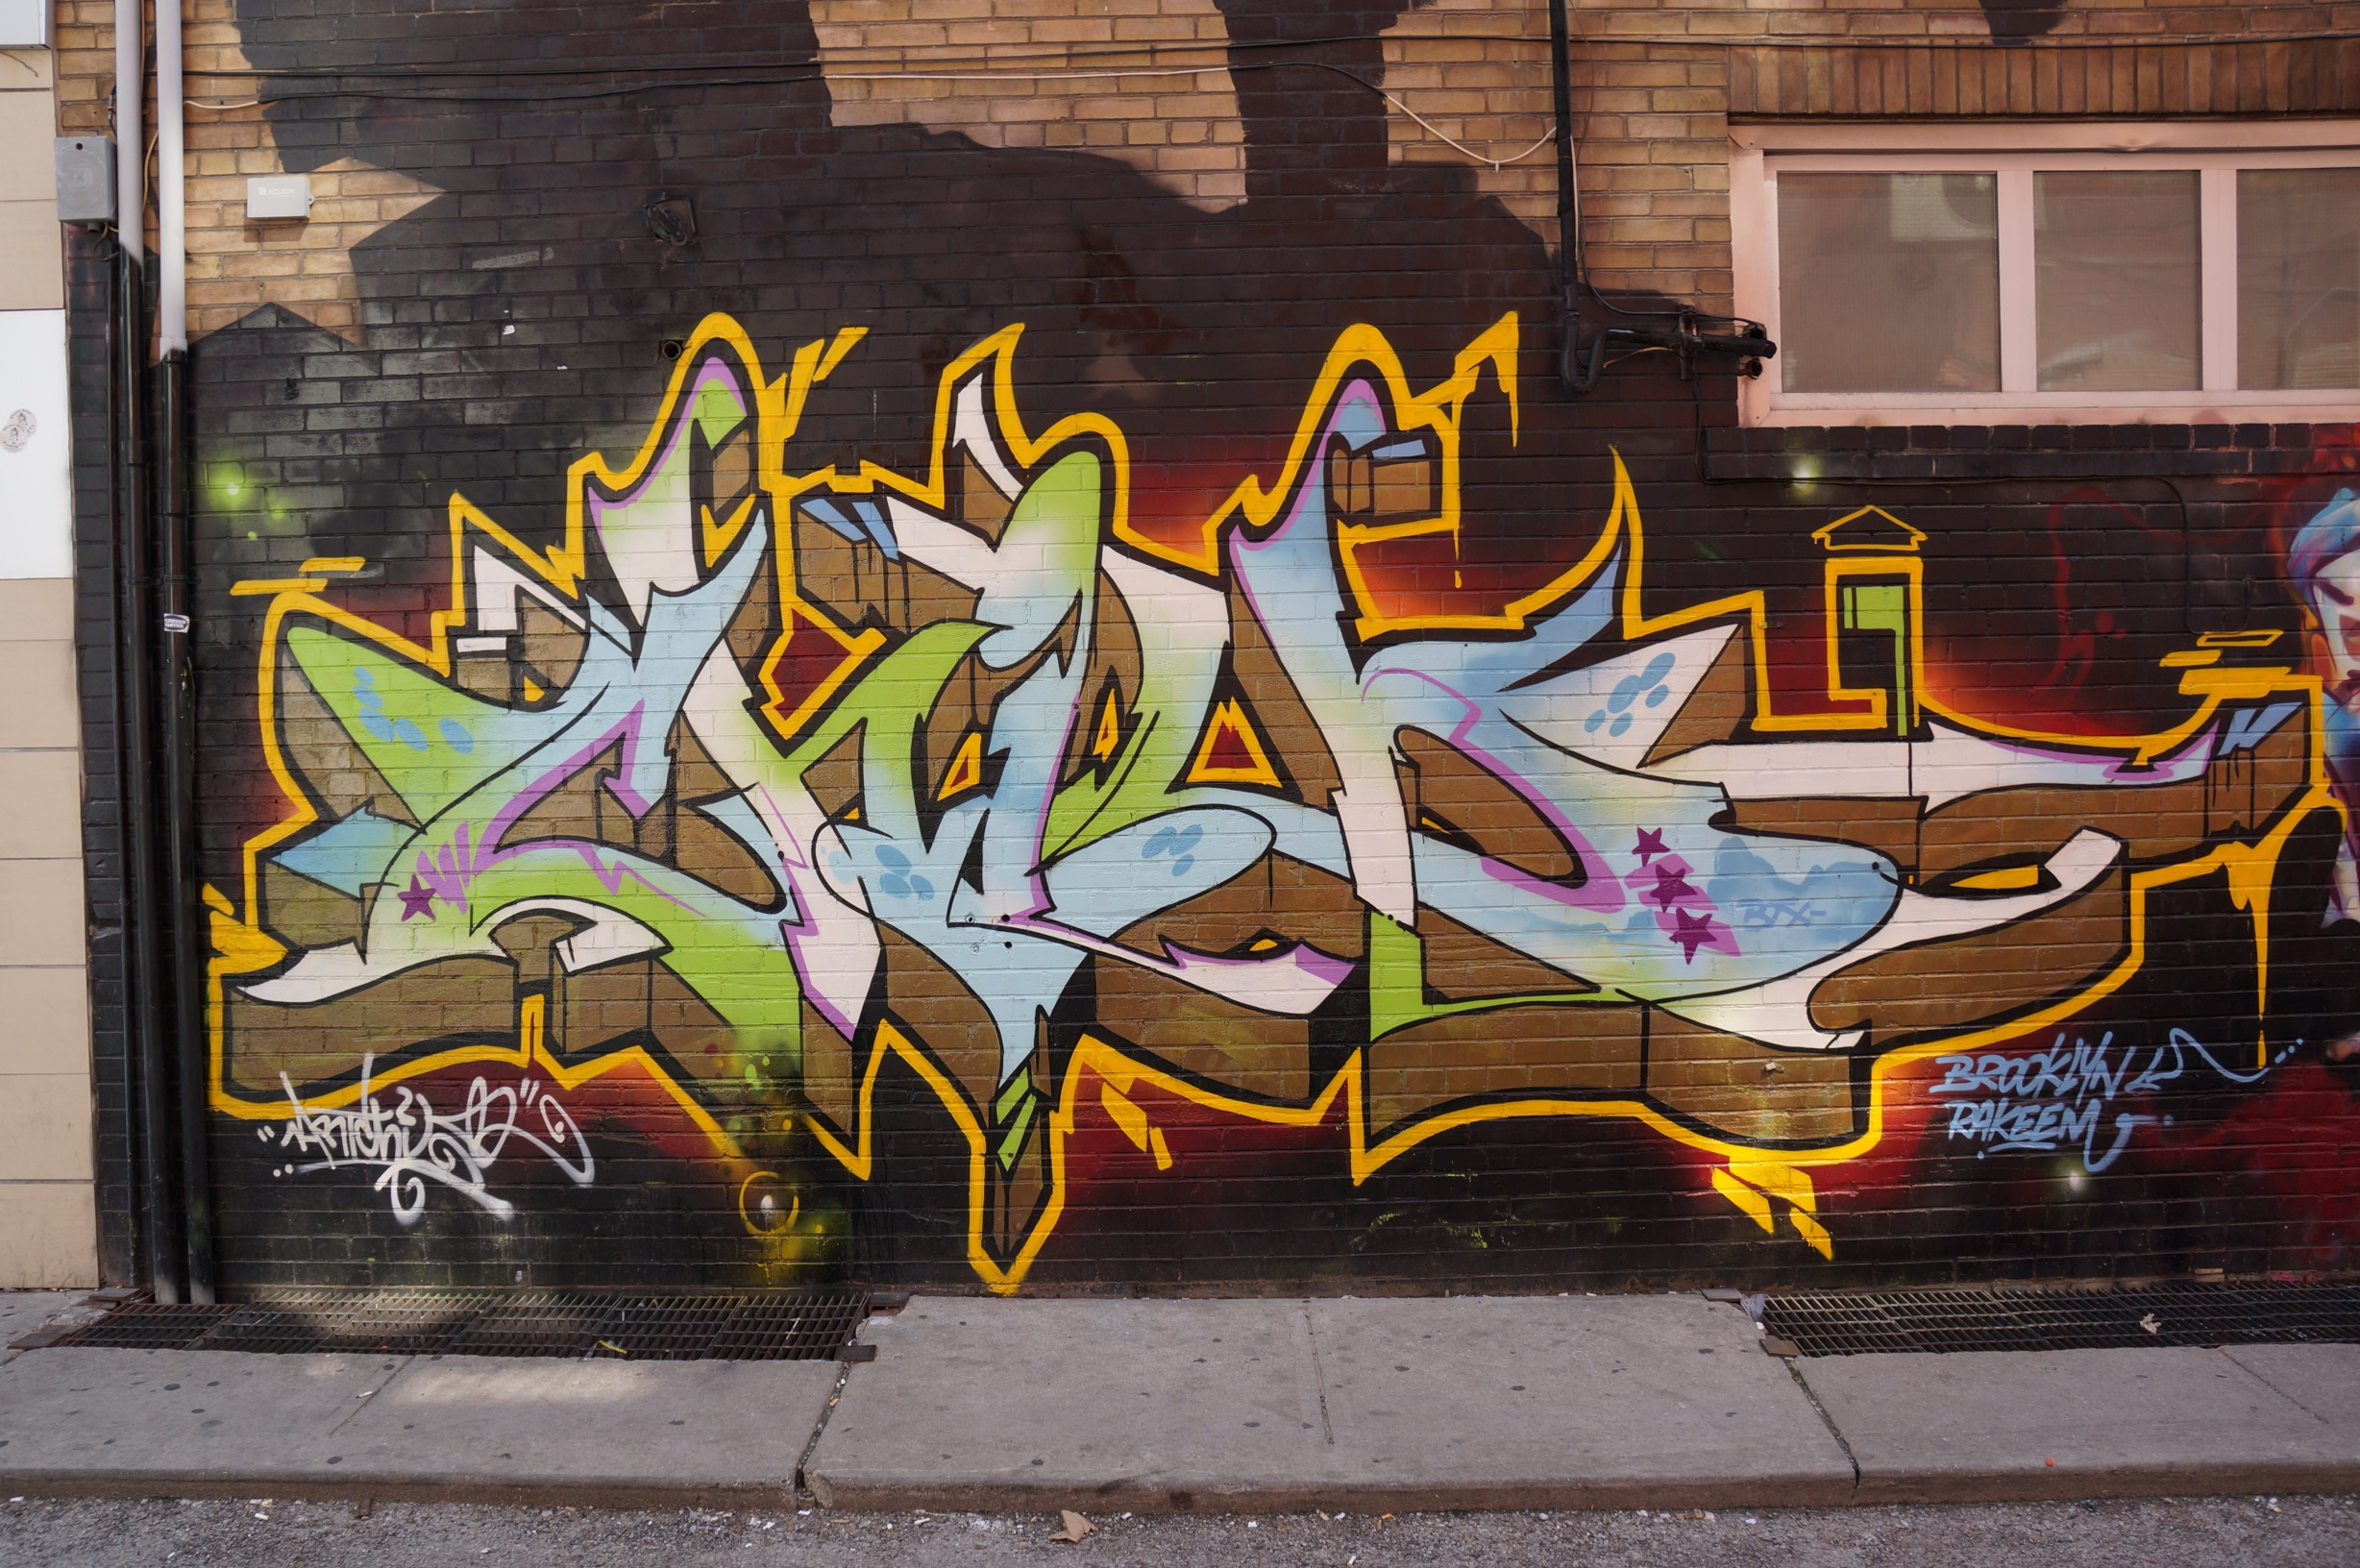 graffiti essays vandalism Free essay: deviance – graffiti & vandalism graffiti is one of the most visible forms of crime, defacing both public and private property it costs the.